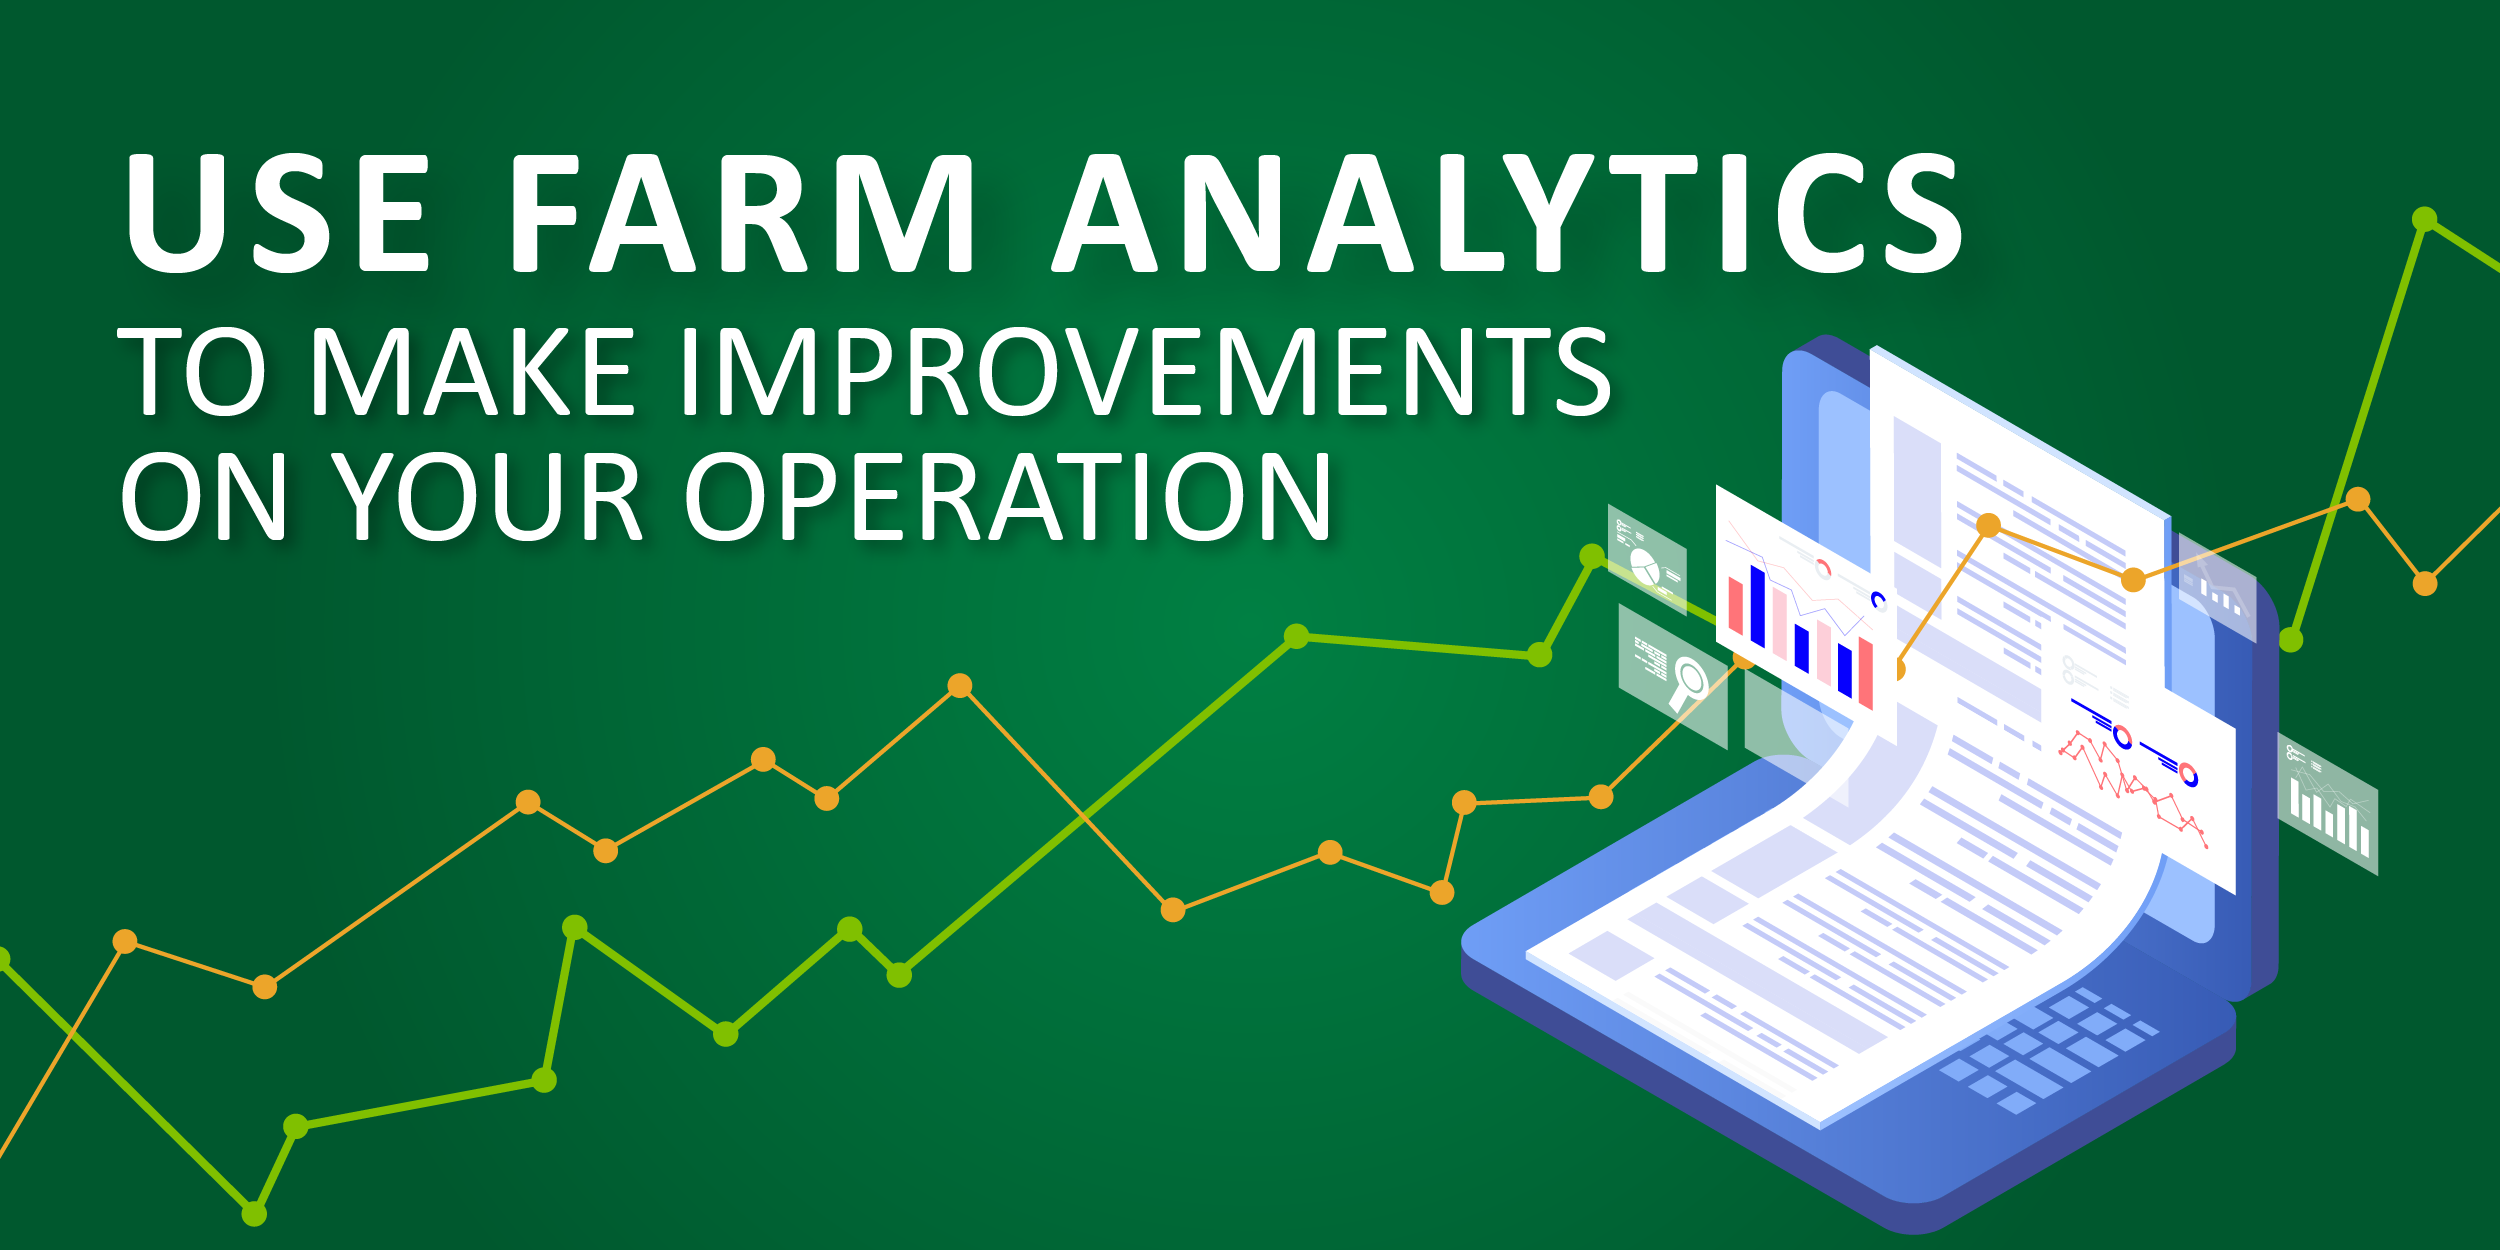 Use farm analytics to make improvements on your operation